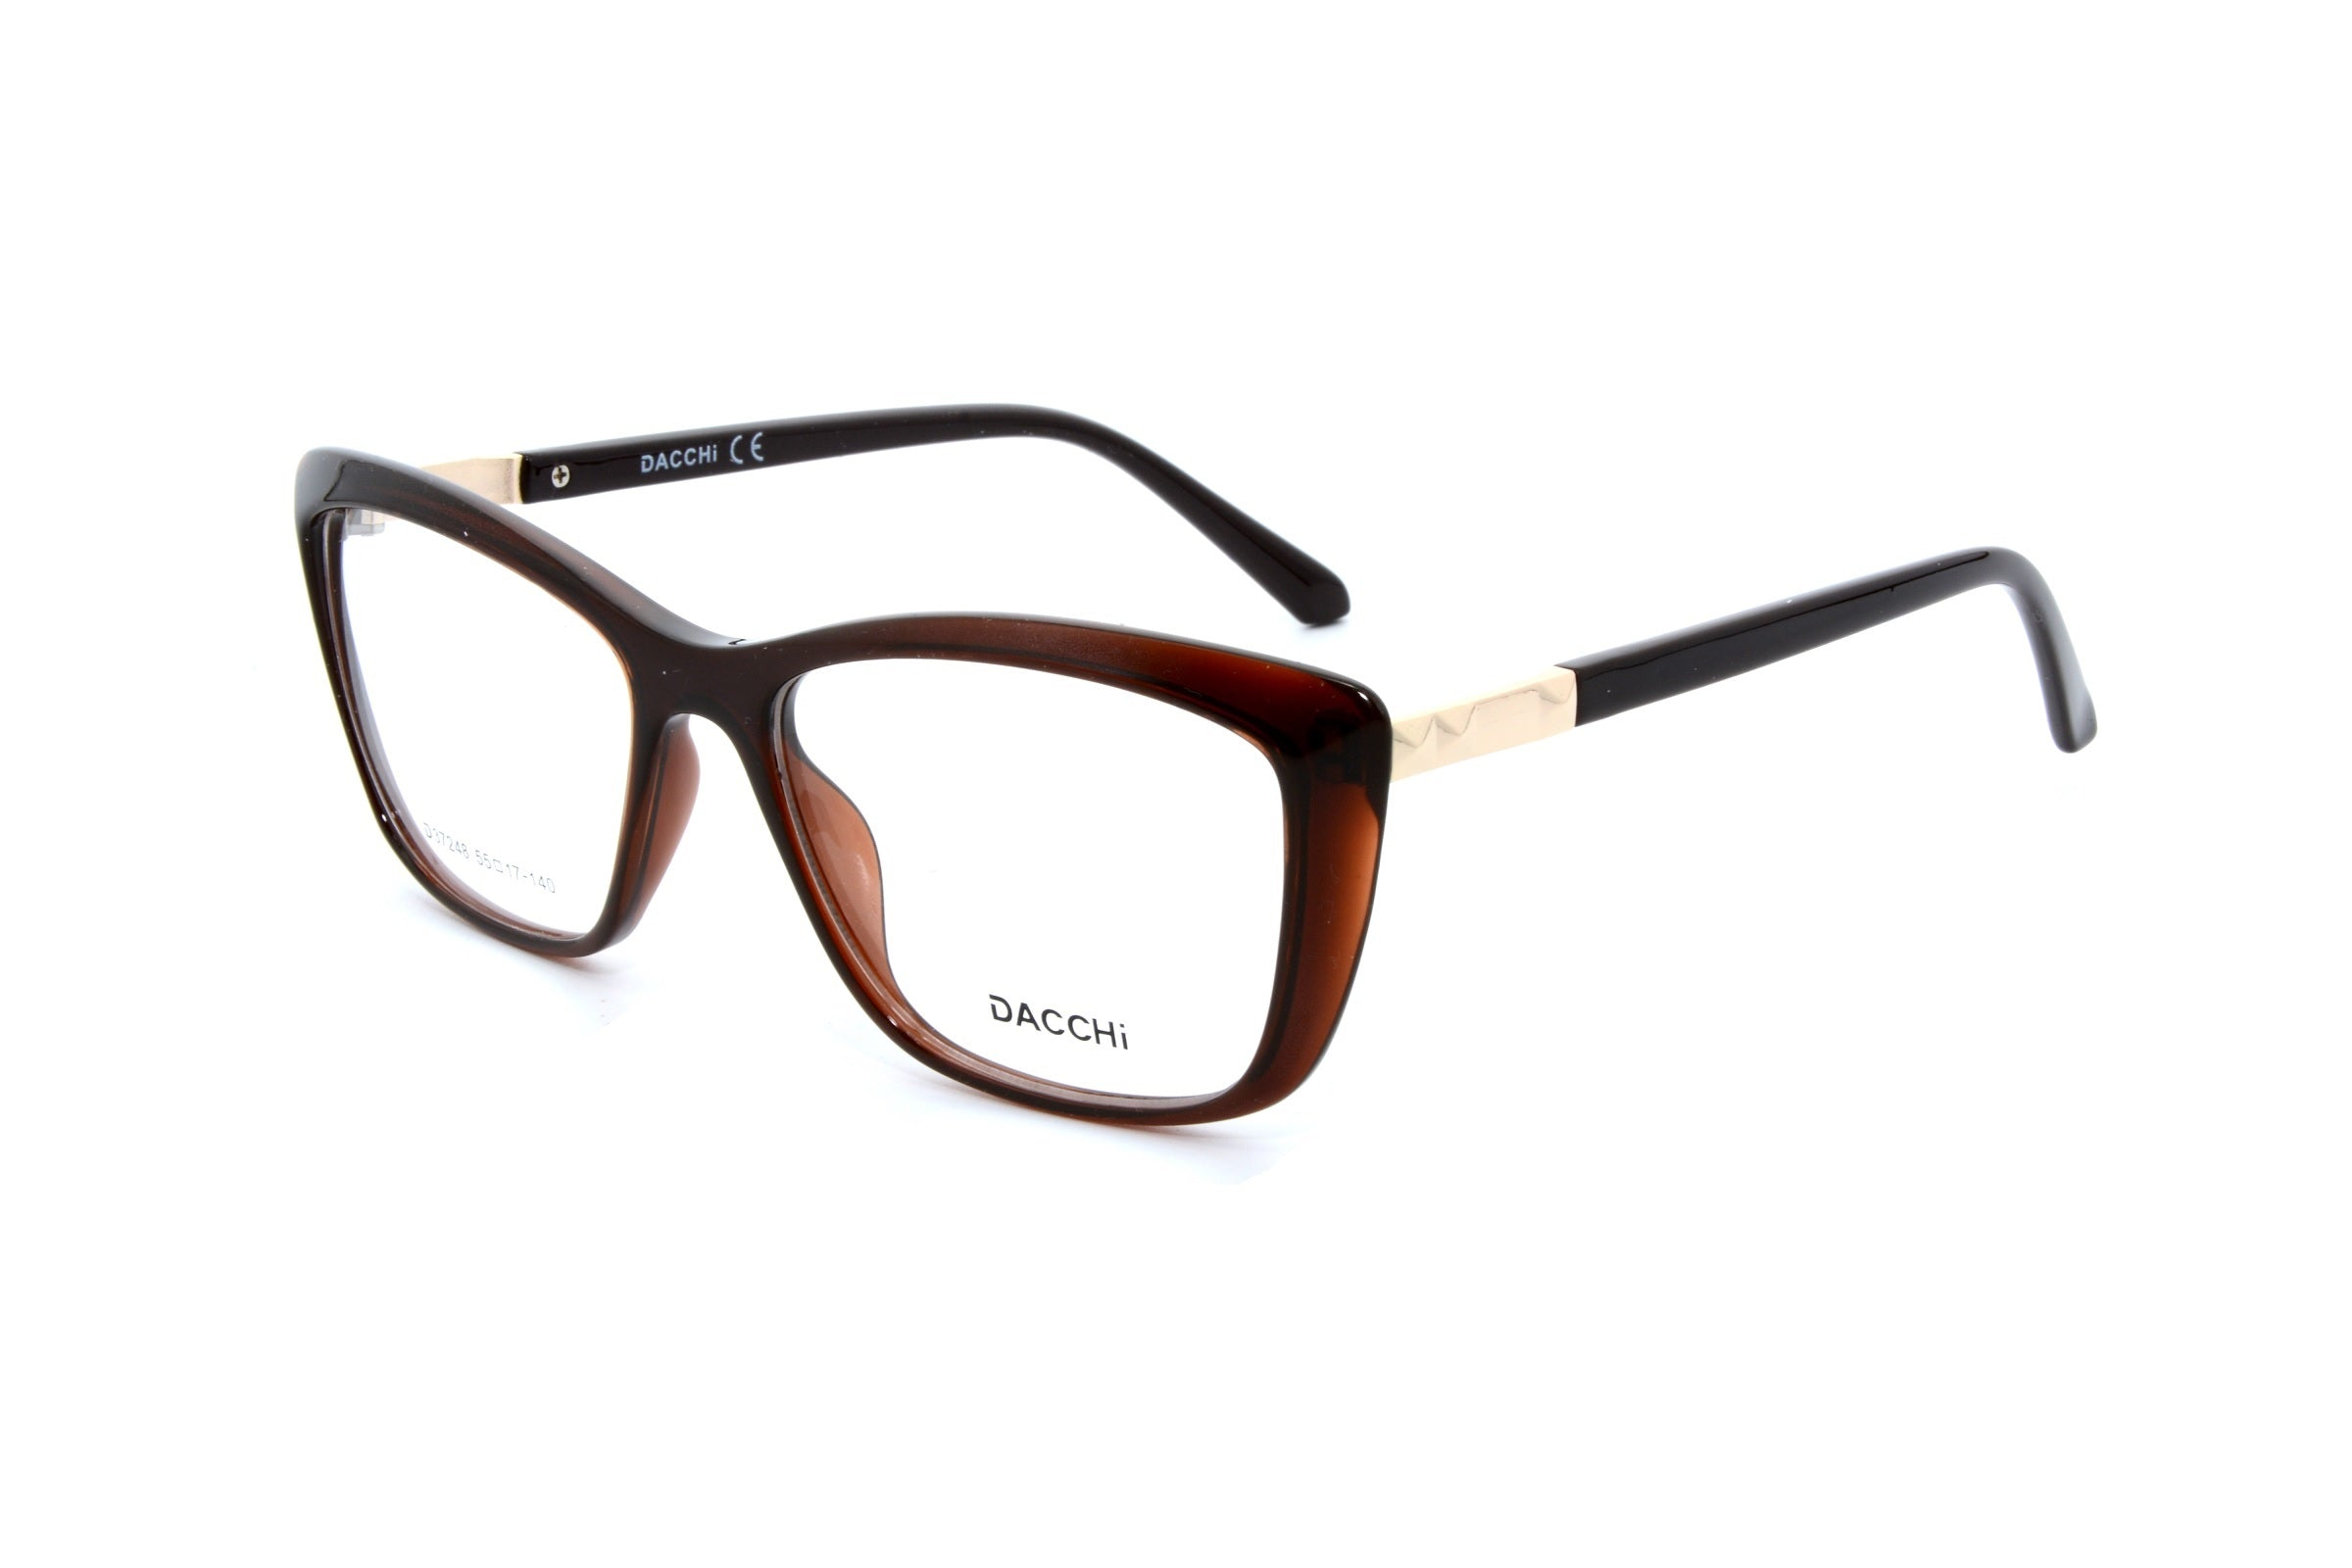 Dacchi eyewear 37248, C2 - Optics Trading